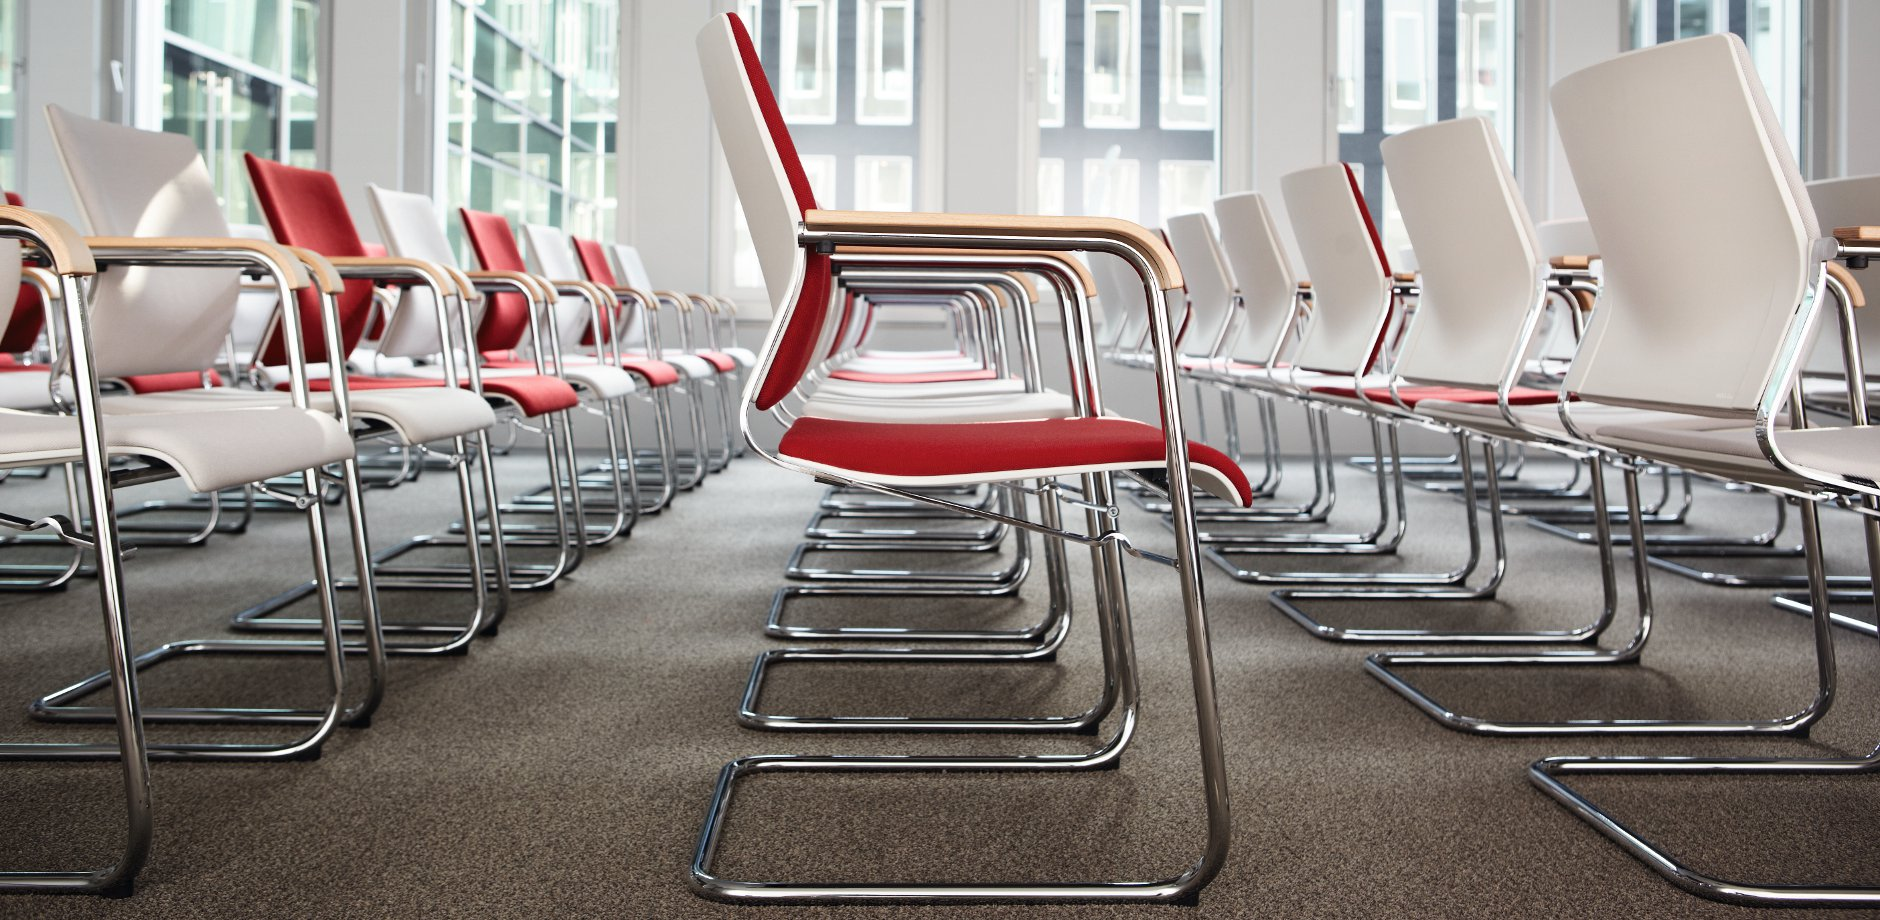 Landessparkasse Oldenburg, Sito cantilever chair by Wilkhahn